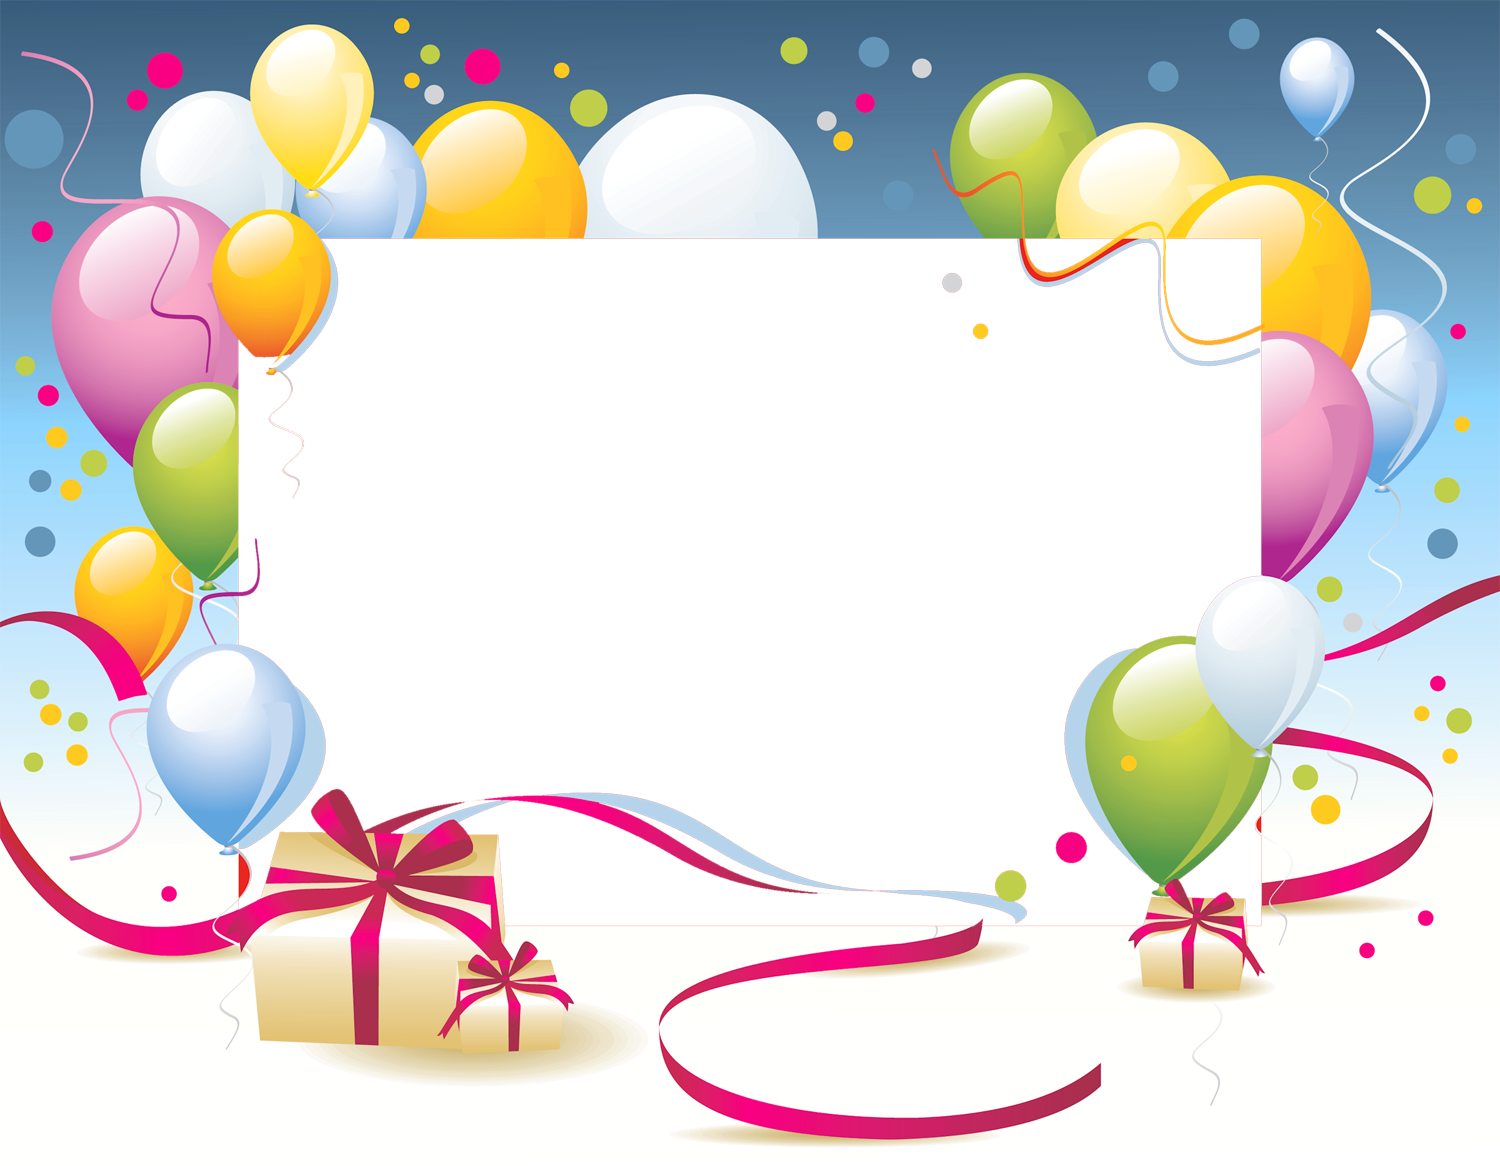 Birthday Party Transparent PNG Pictures - Free Icons and ...